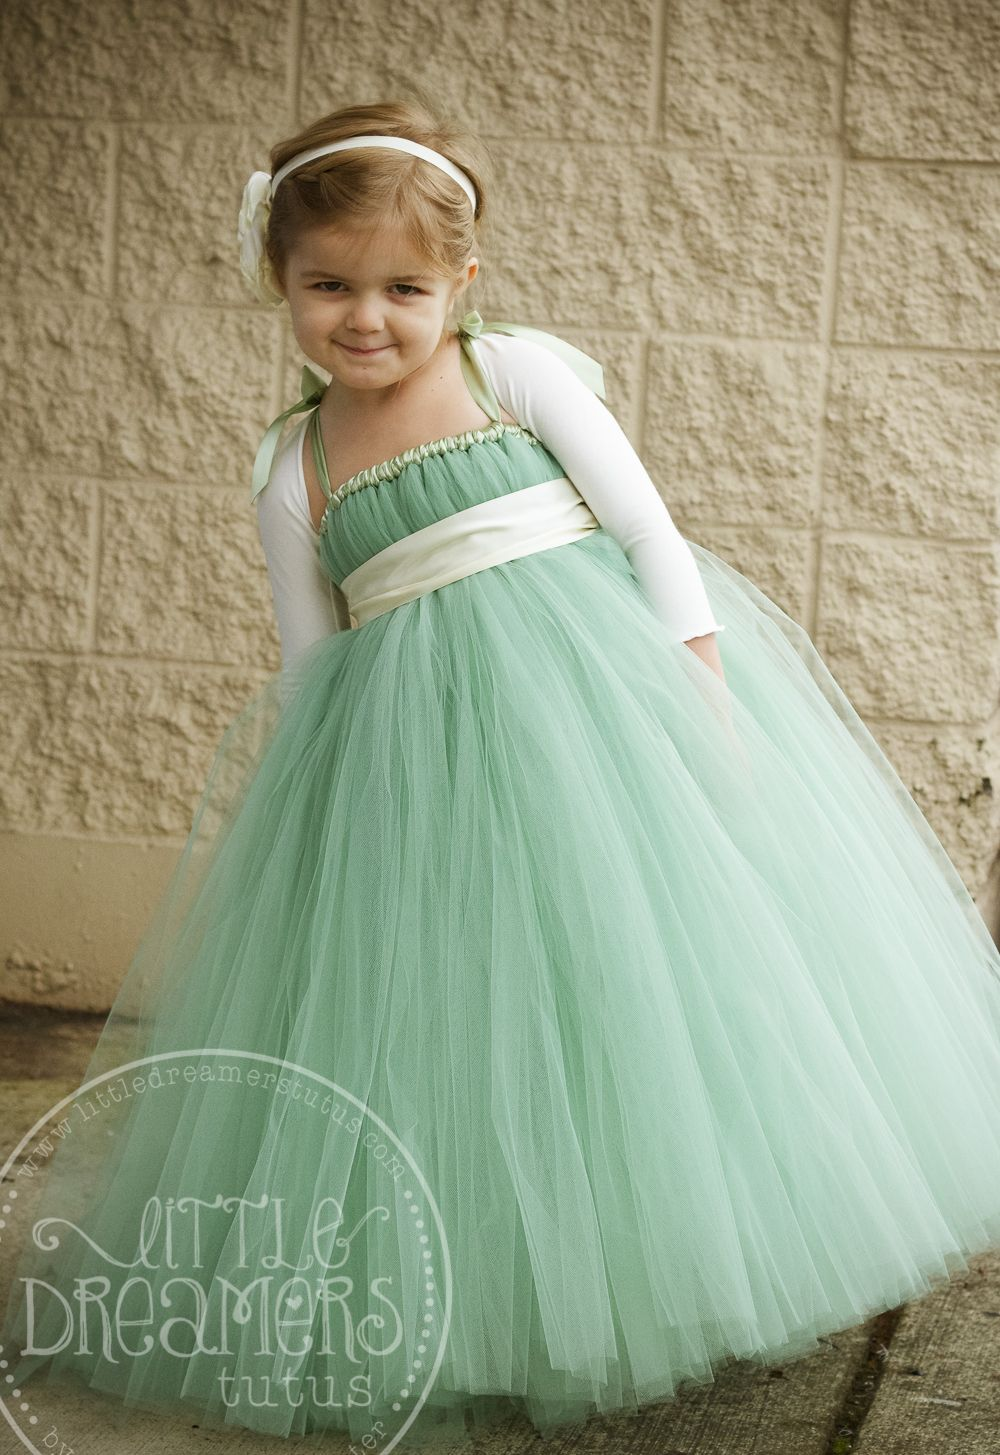 Wedding Mint Flower Girl Dresses flowergirl mint green tutu dress with a navy sash p3 challenge sash